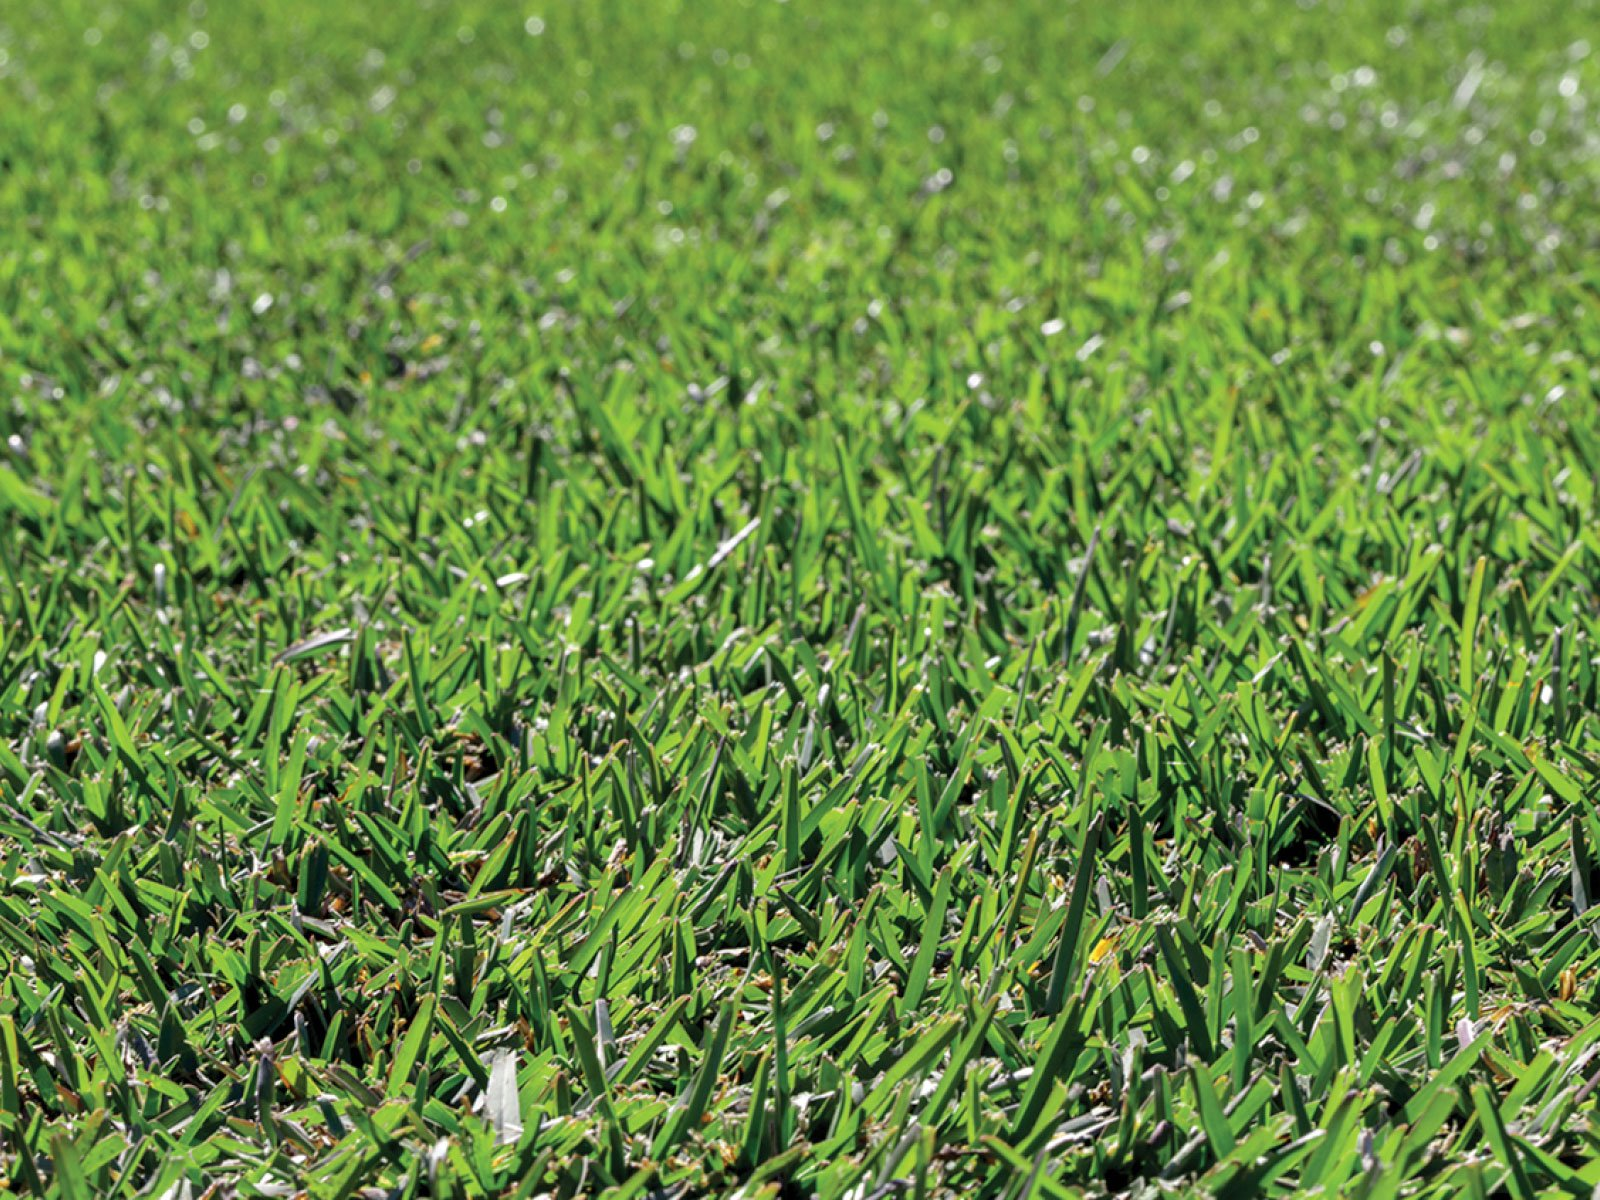 Natural turf vs artificial turf